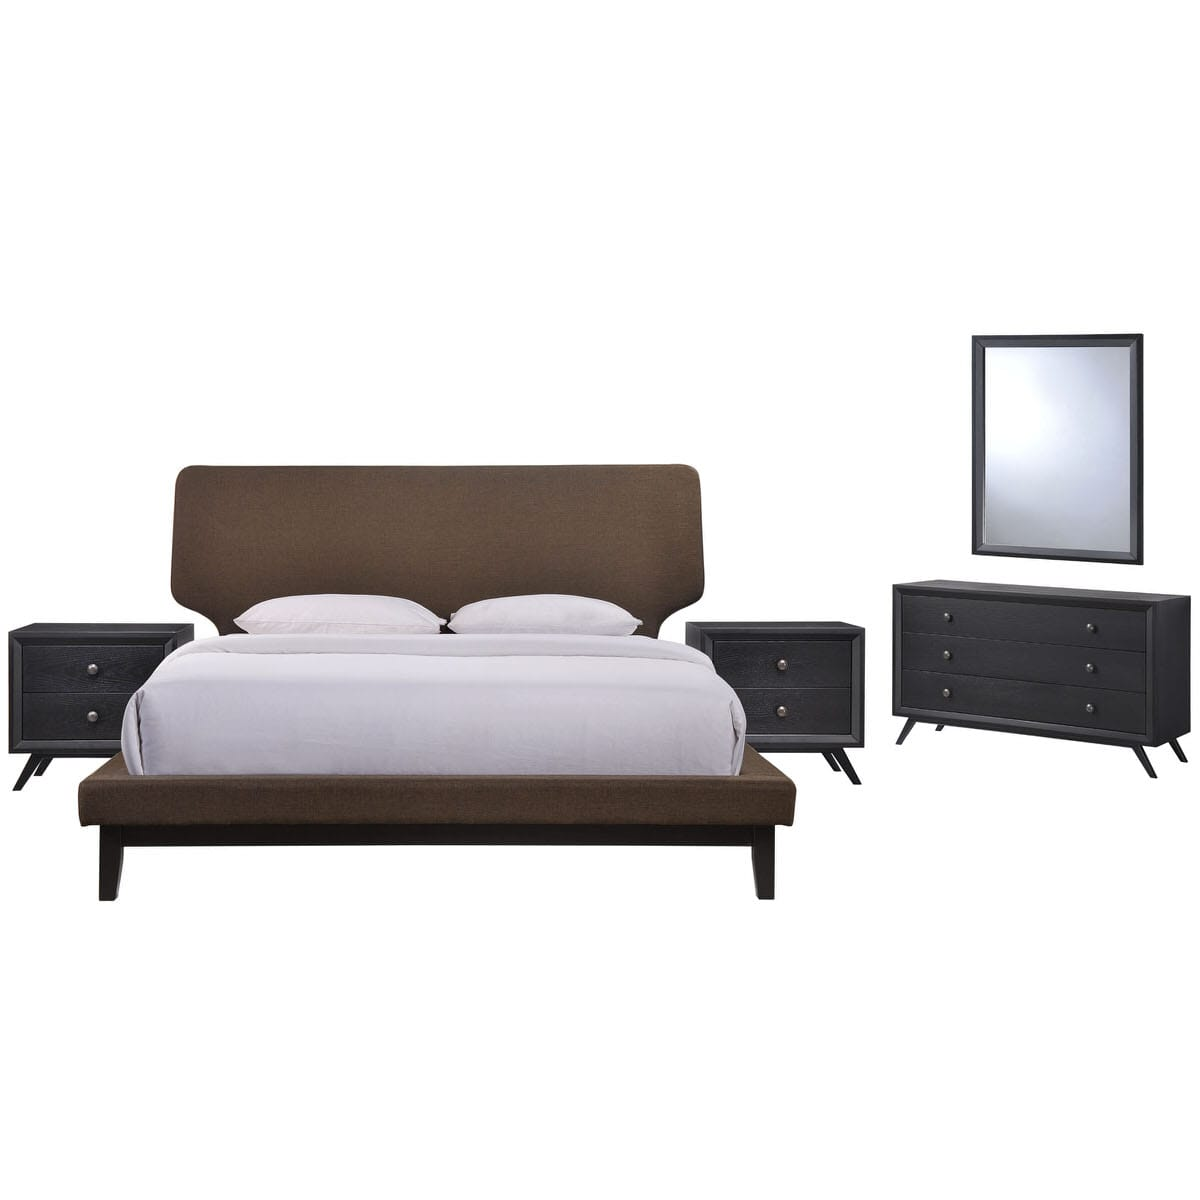 Bethany 5 Piece Queen Bedroom Set Black Brown by Modern Living